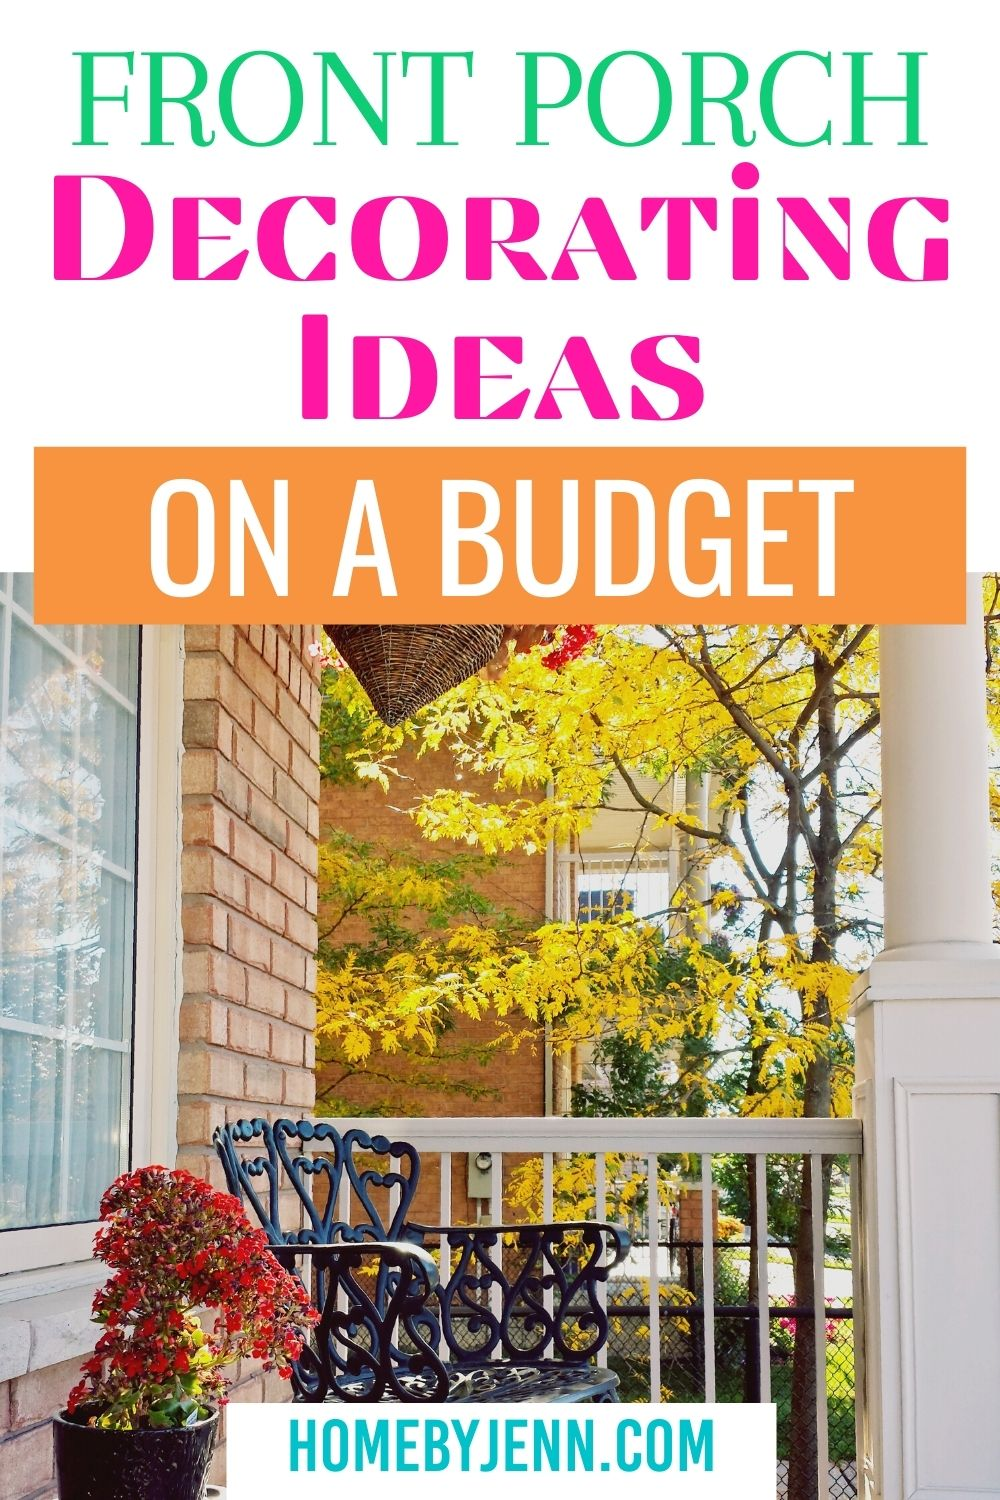 Fall front porch decorating ideas on a budget is easy to attain with these tips. Stay on budget with these budget friendly decorating ideas. #fall #falldecor #falldecoronabudget #frugaldecor via @homebyjenn